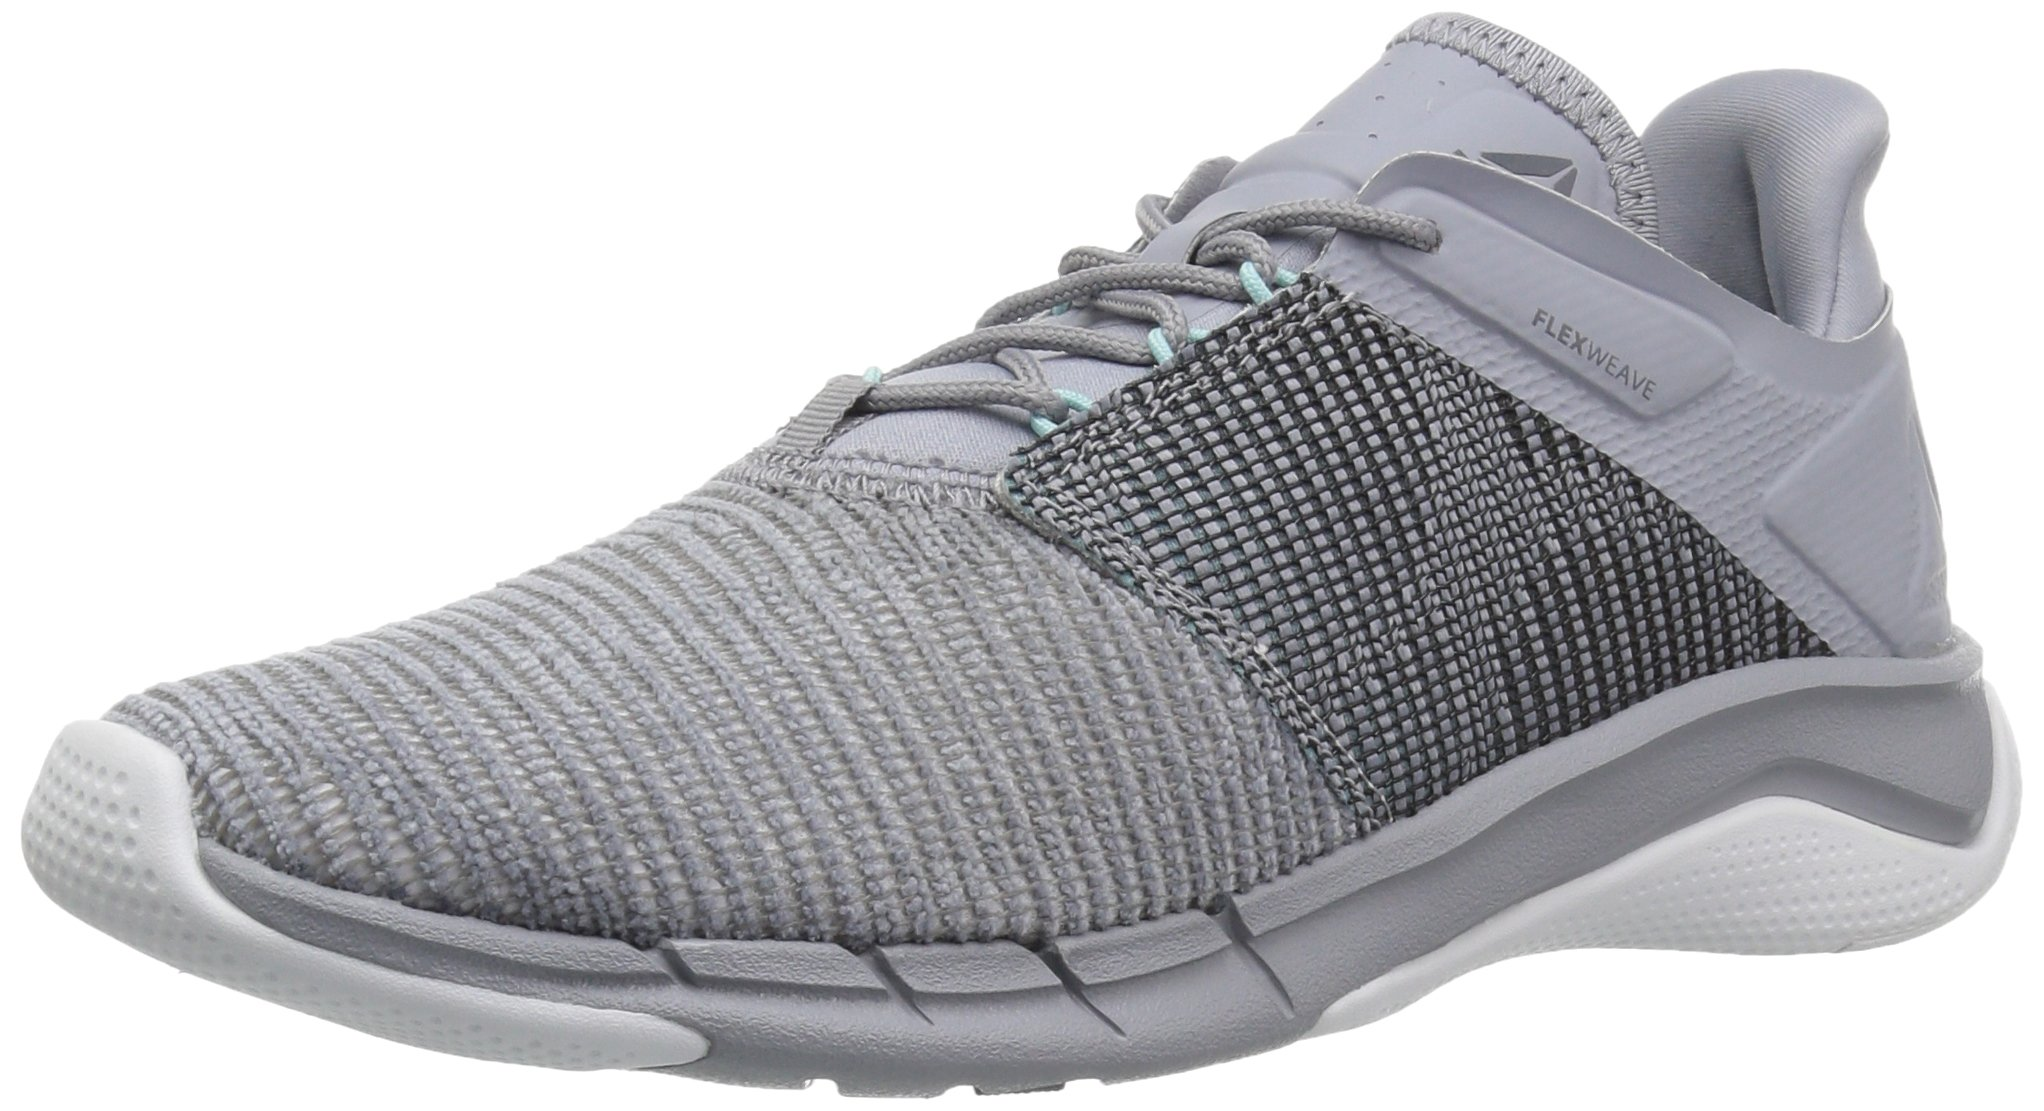 Reebok Womens Flexweave Running Porcelain